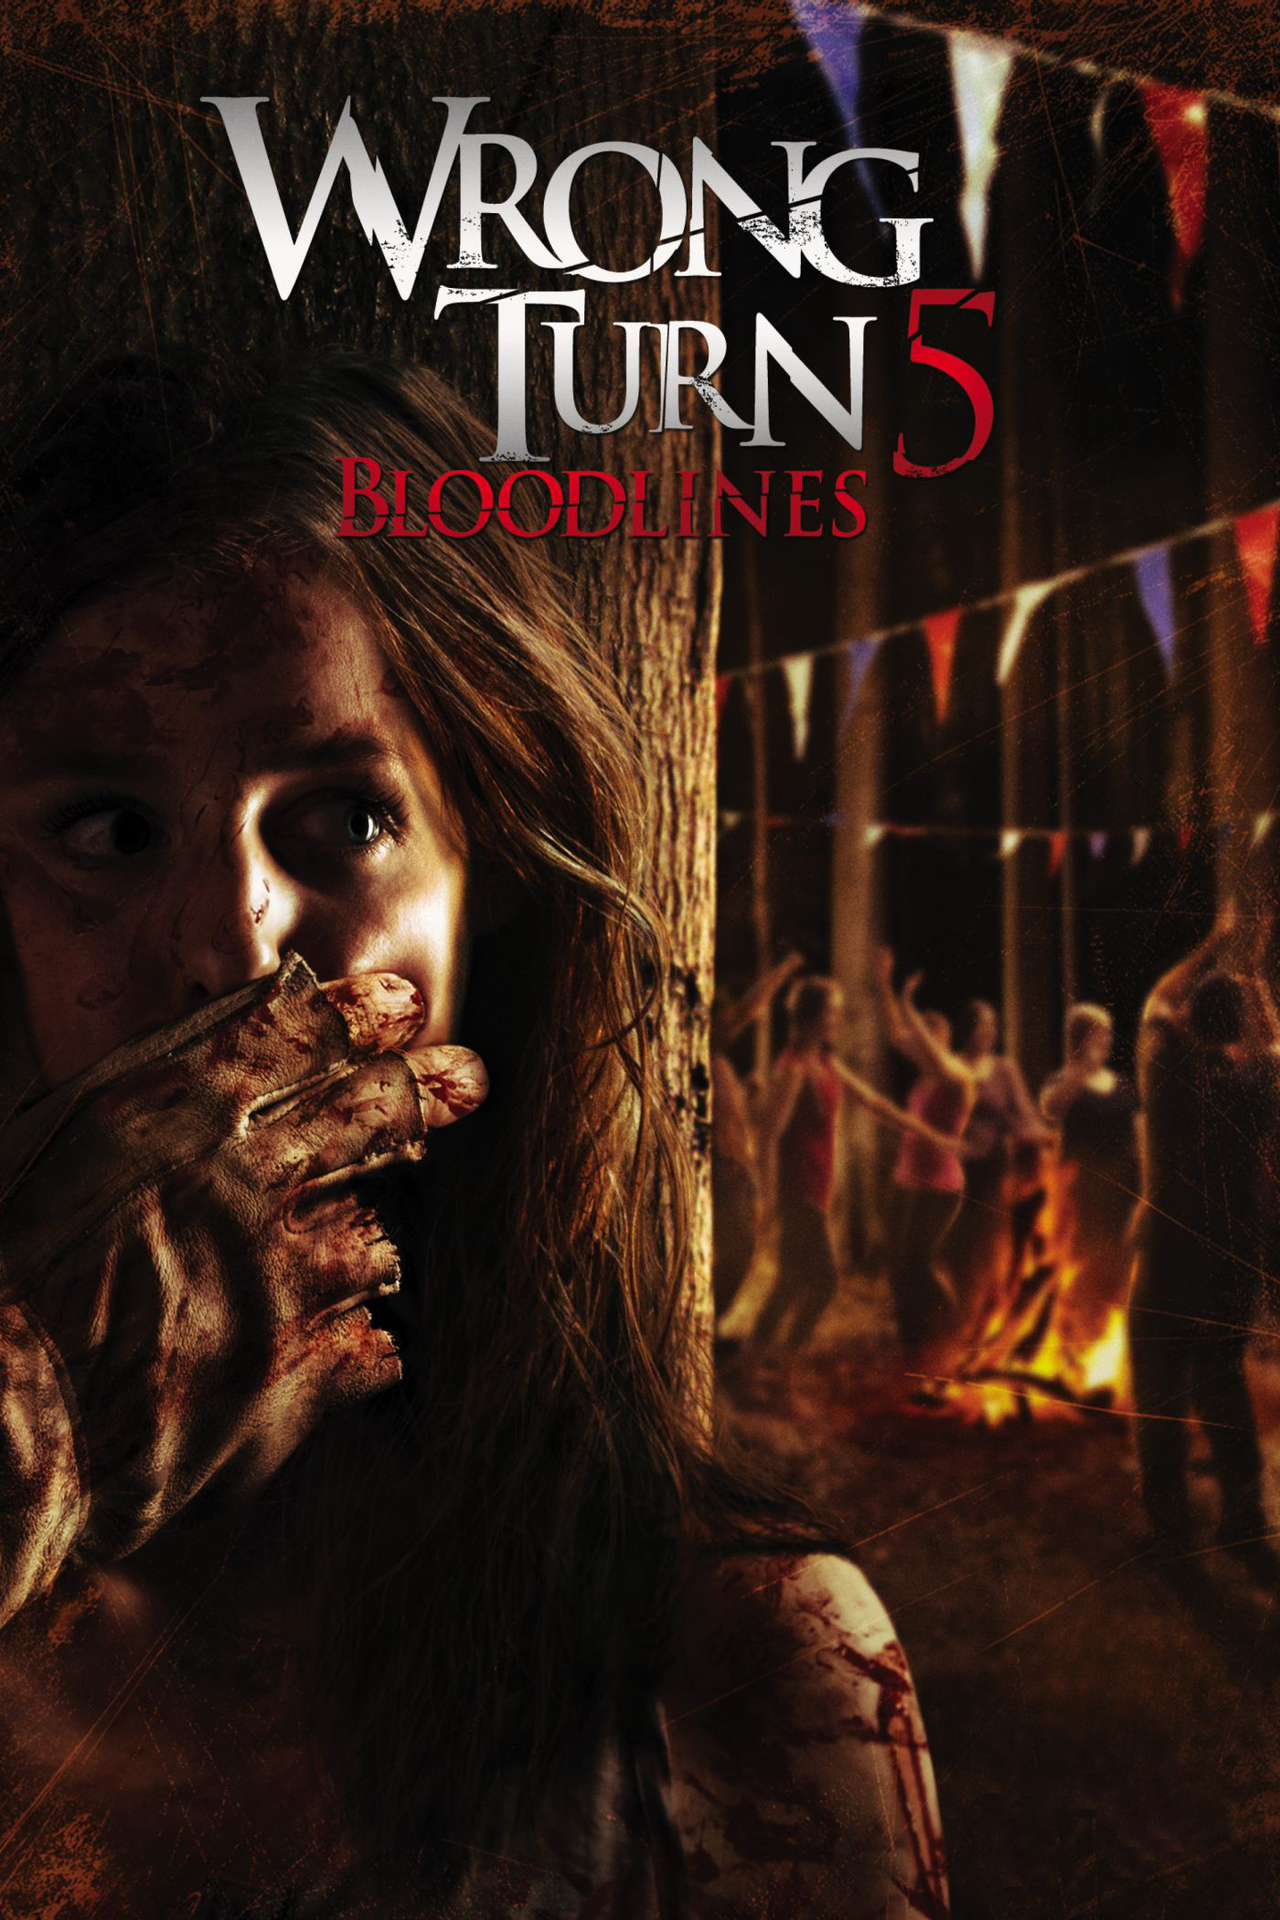 Wrong Turn 5: Bloodlines (2012) (Video) Technical Specifications